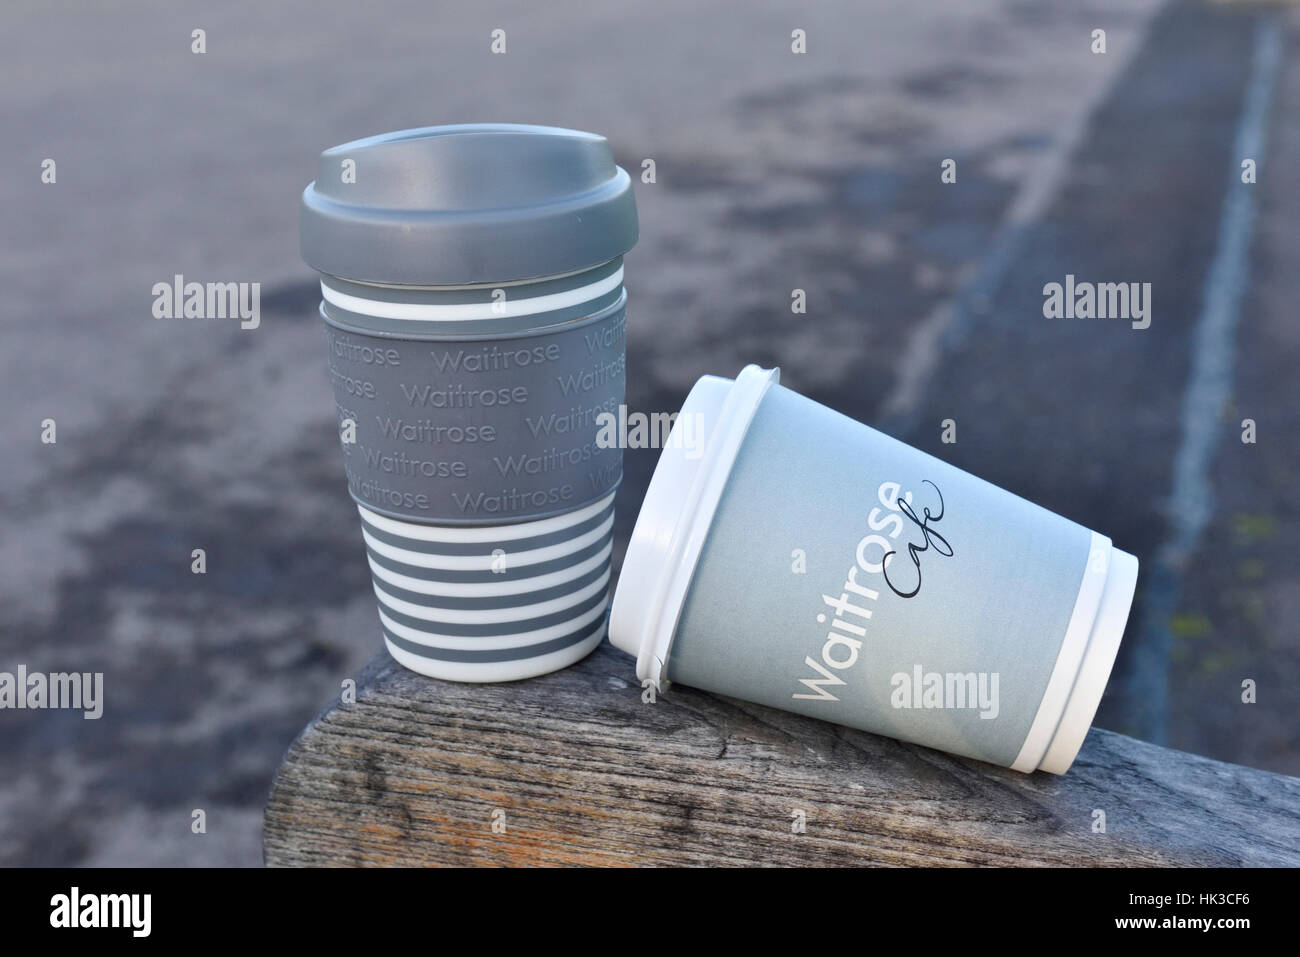 Waitrose disposable and reusable take away coffee cups or travell mug on park bench, Central London, England, UK - Stock Image